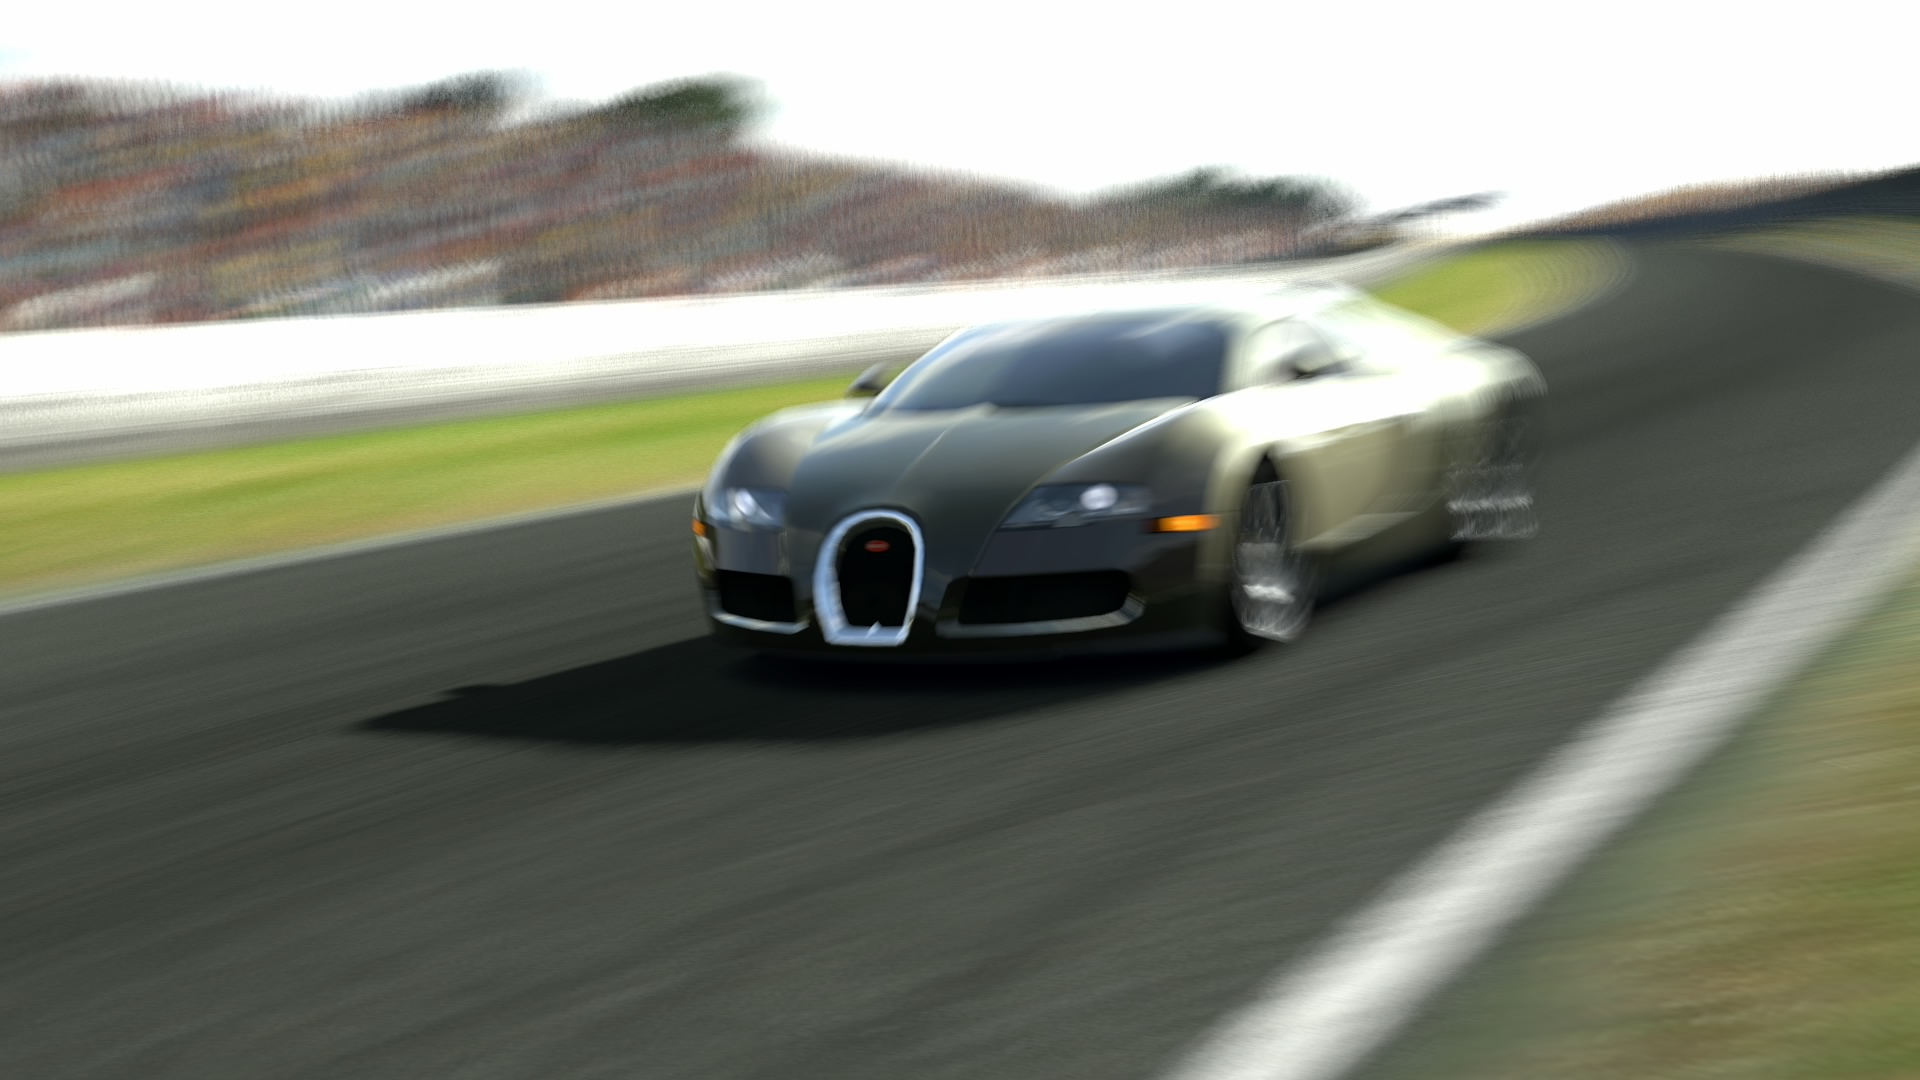 circuit-de-la-sarthe-2009-no-chicanes-_2 Fascinating Gran Turismo Psp Bugatti Veyron Price Cars Trend